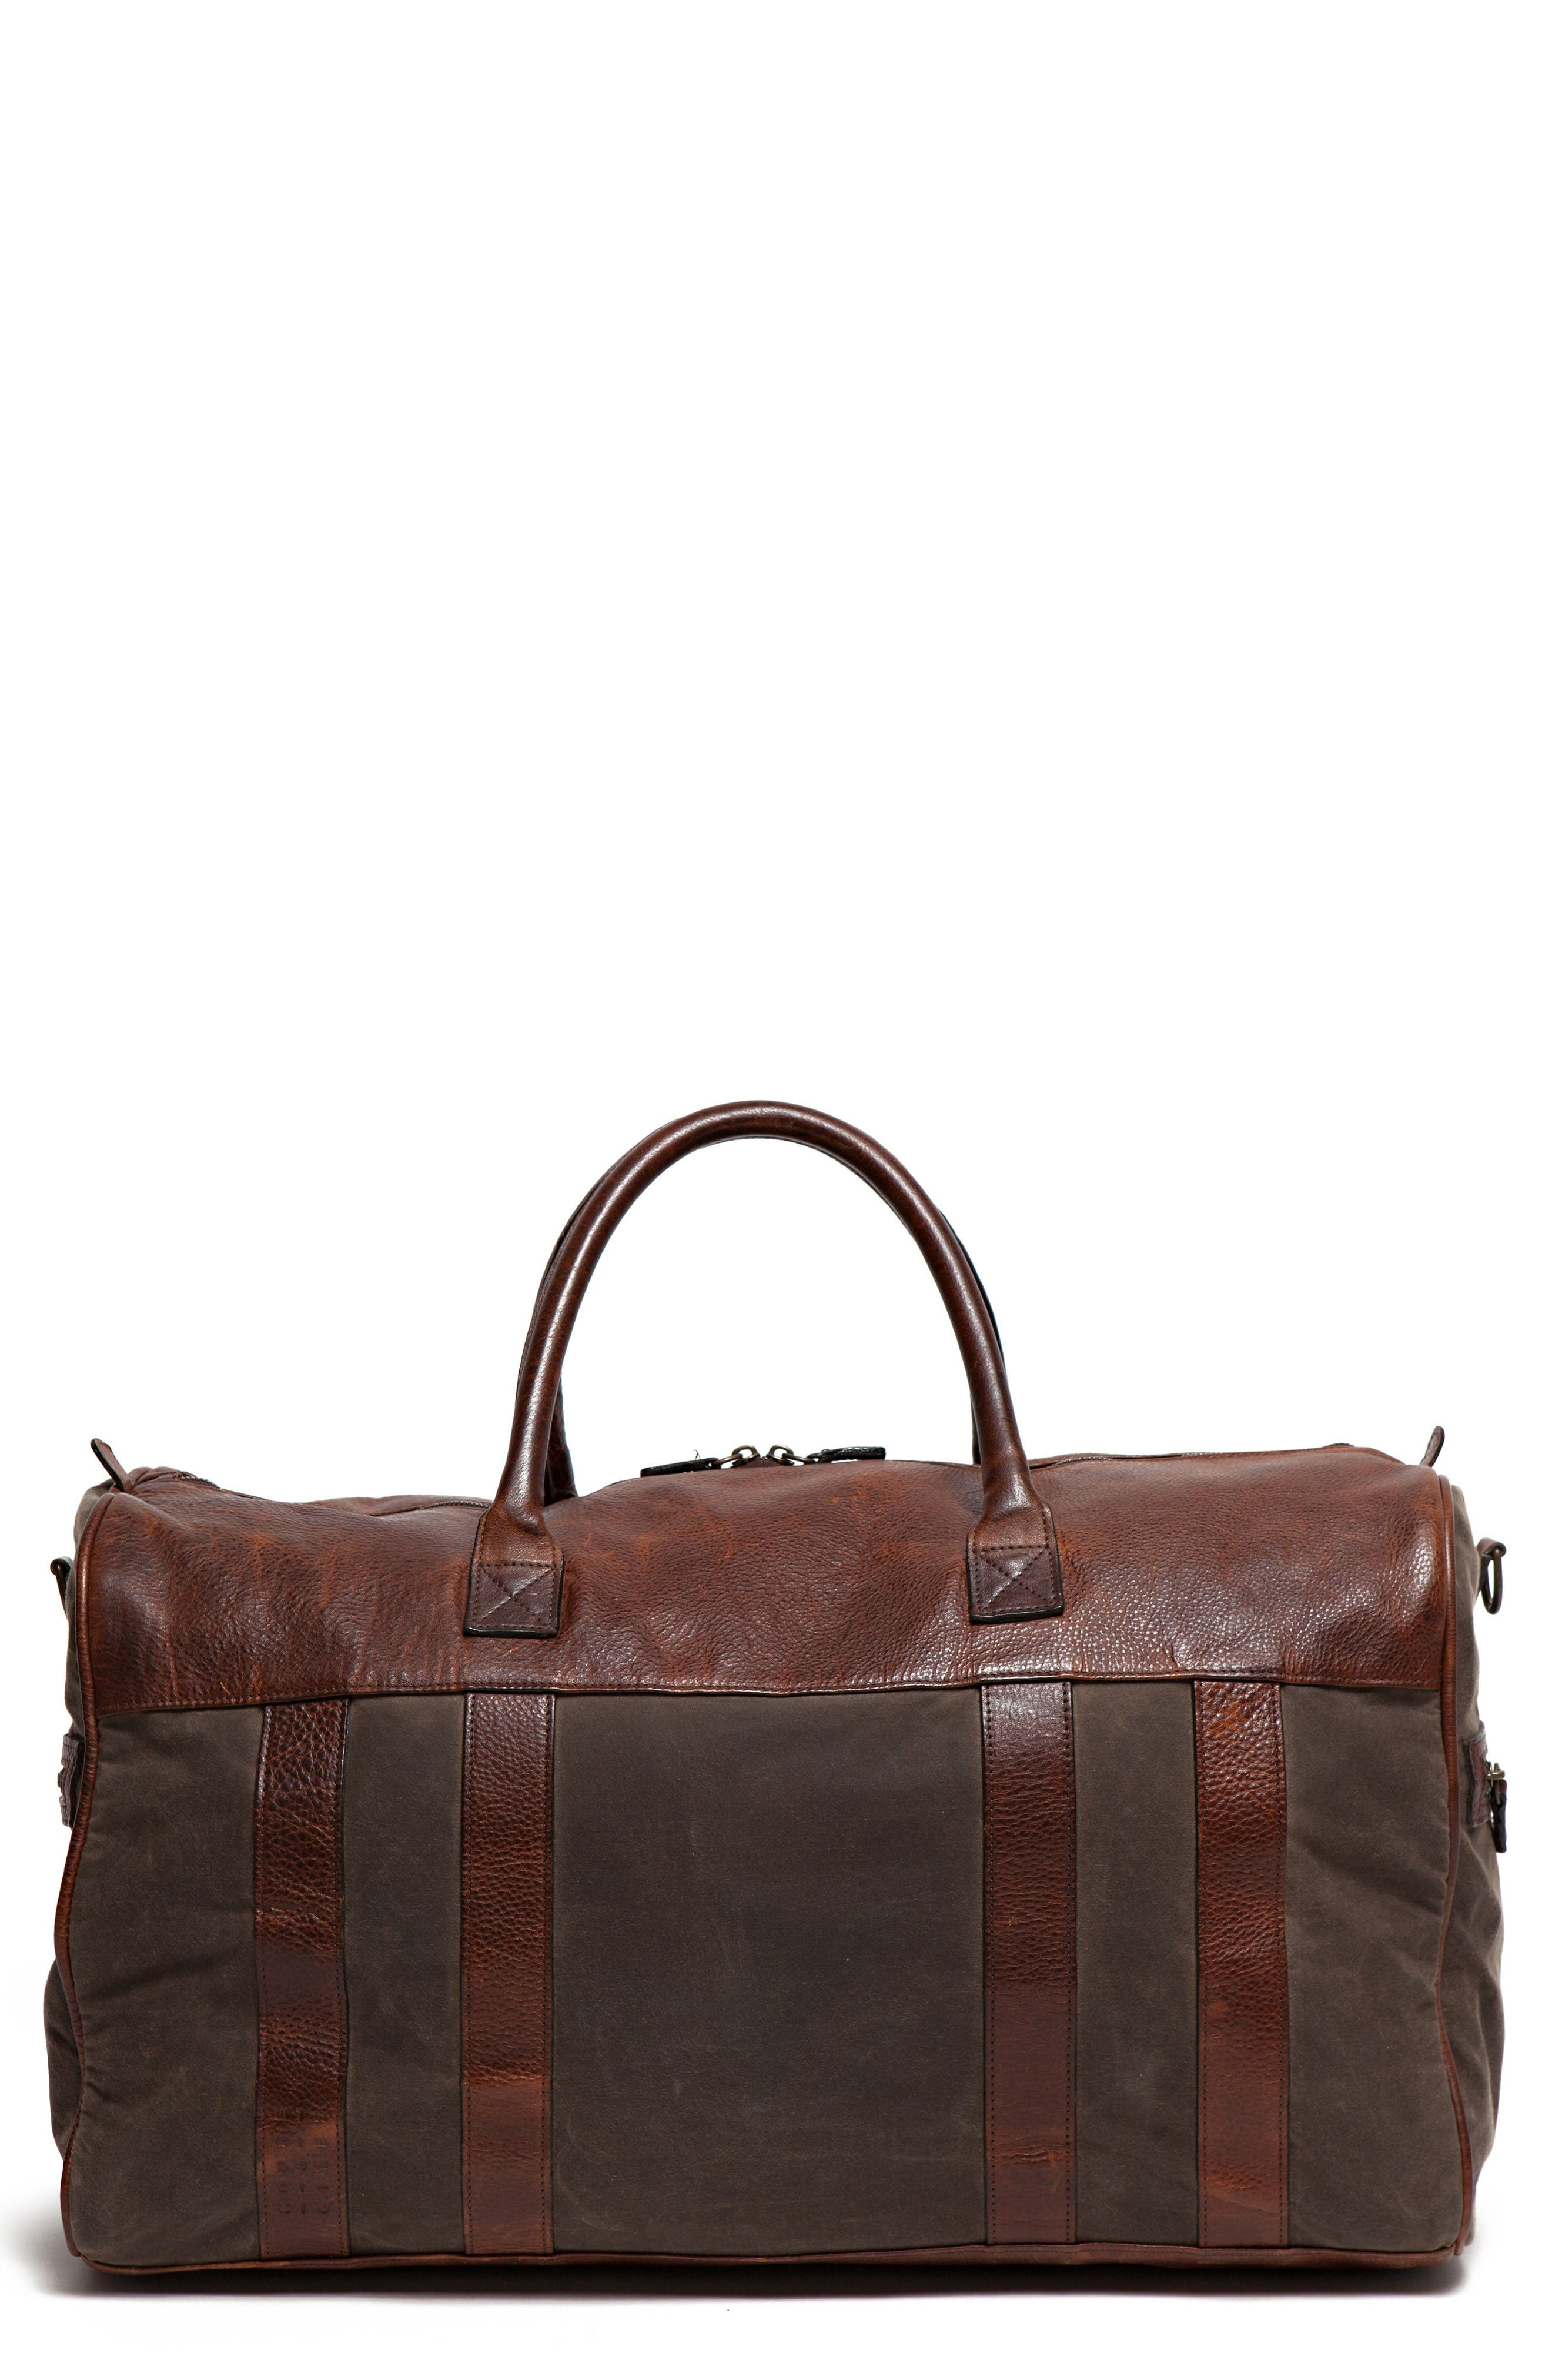 Cleland XL Duffel Bag,                         Main,                         color, Waxwear Rangertan